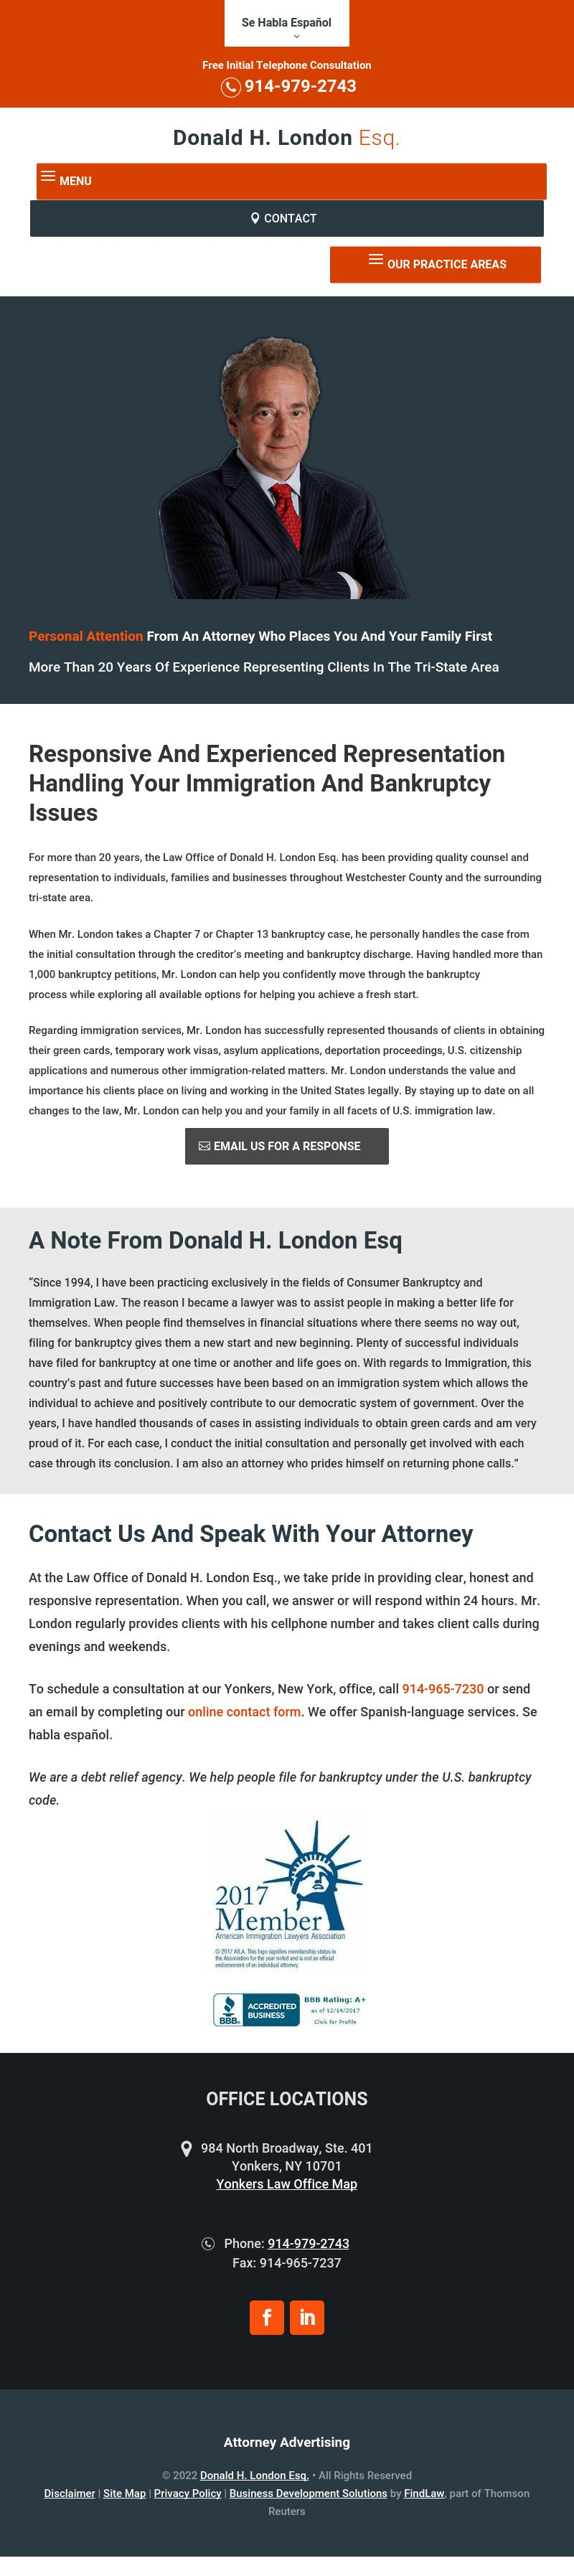 Donald H. London Esq. - Yonkers NY Lawyers